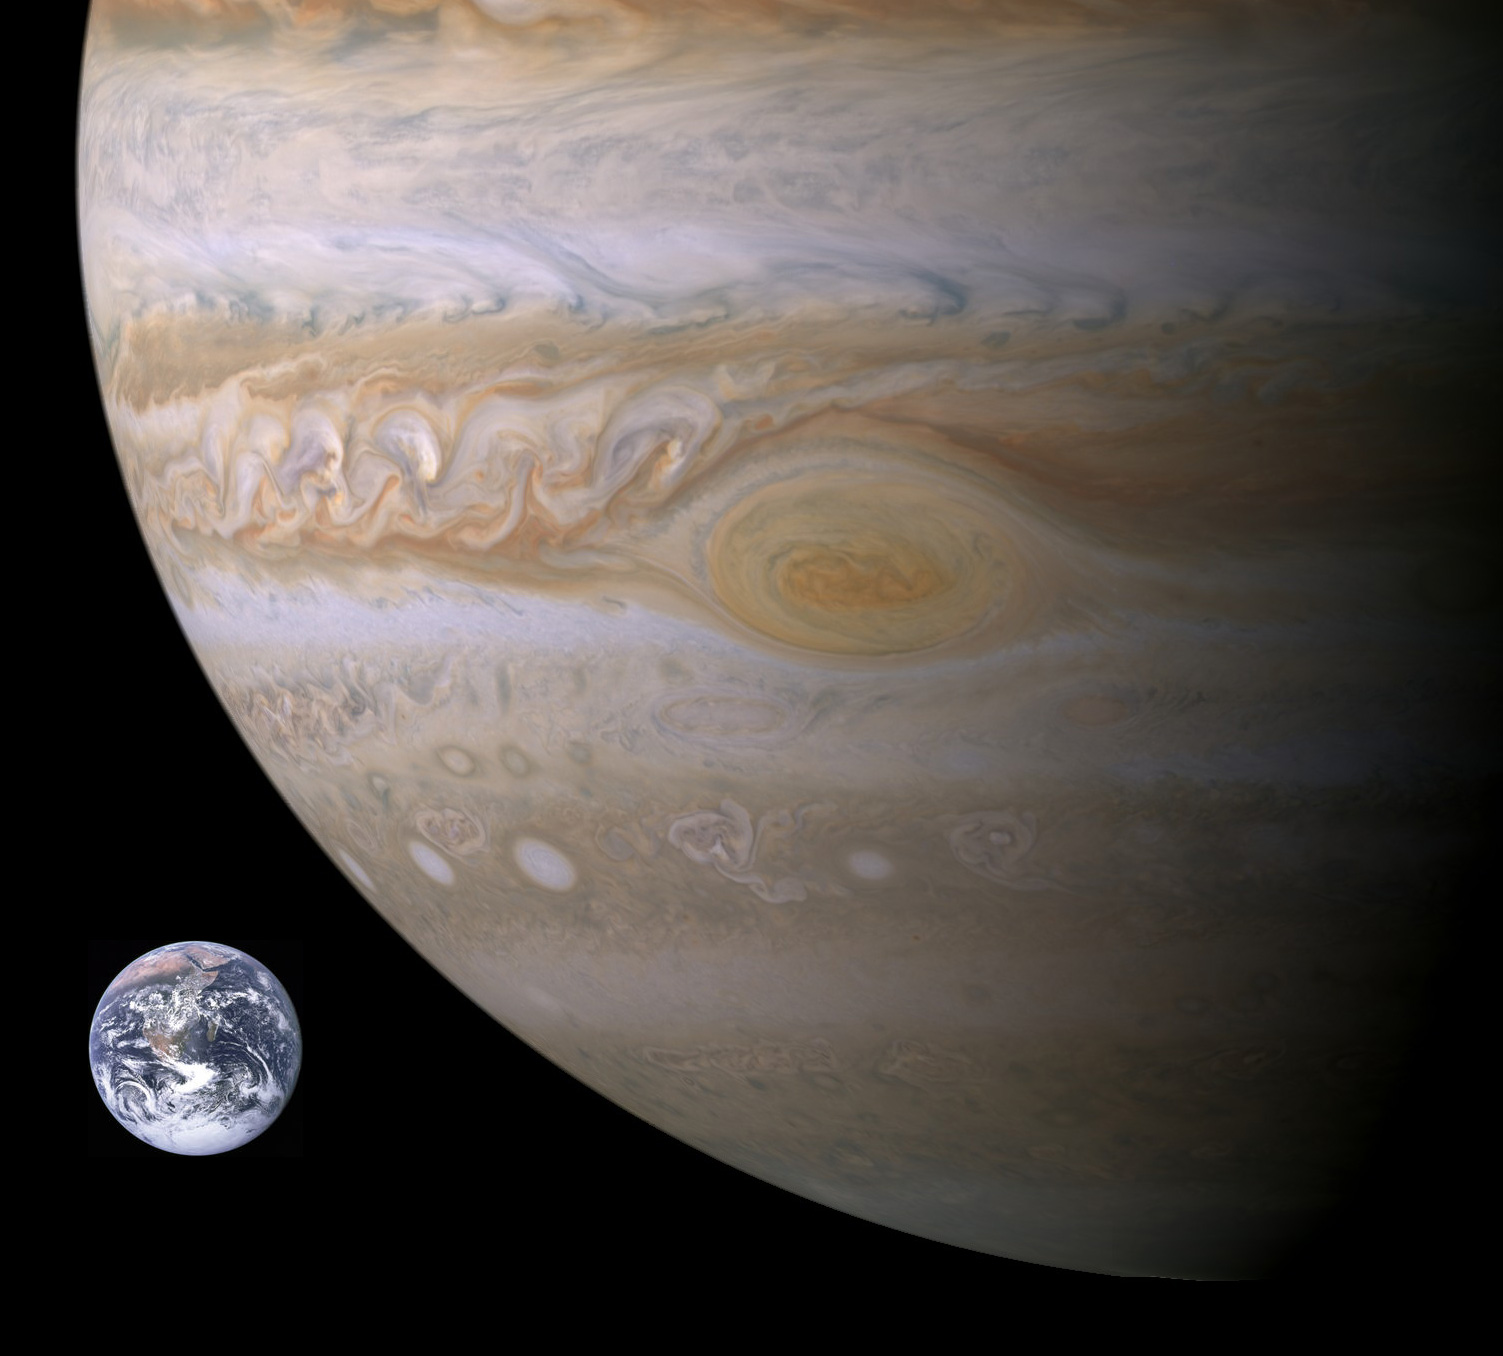 planet jupiter size compared to earth - photo #31